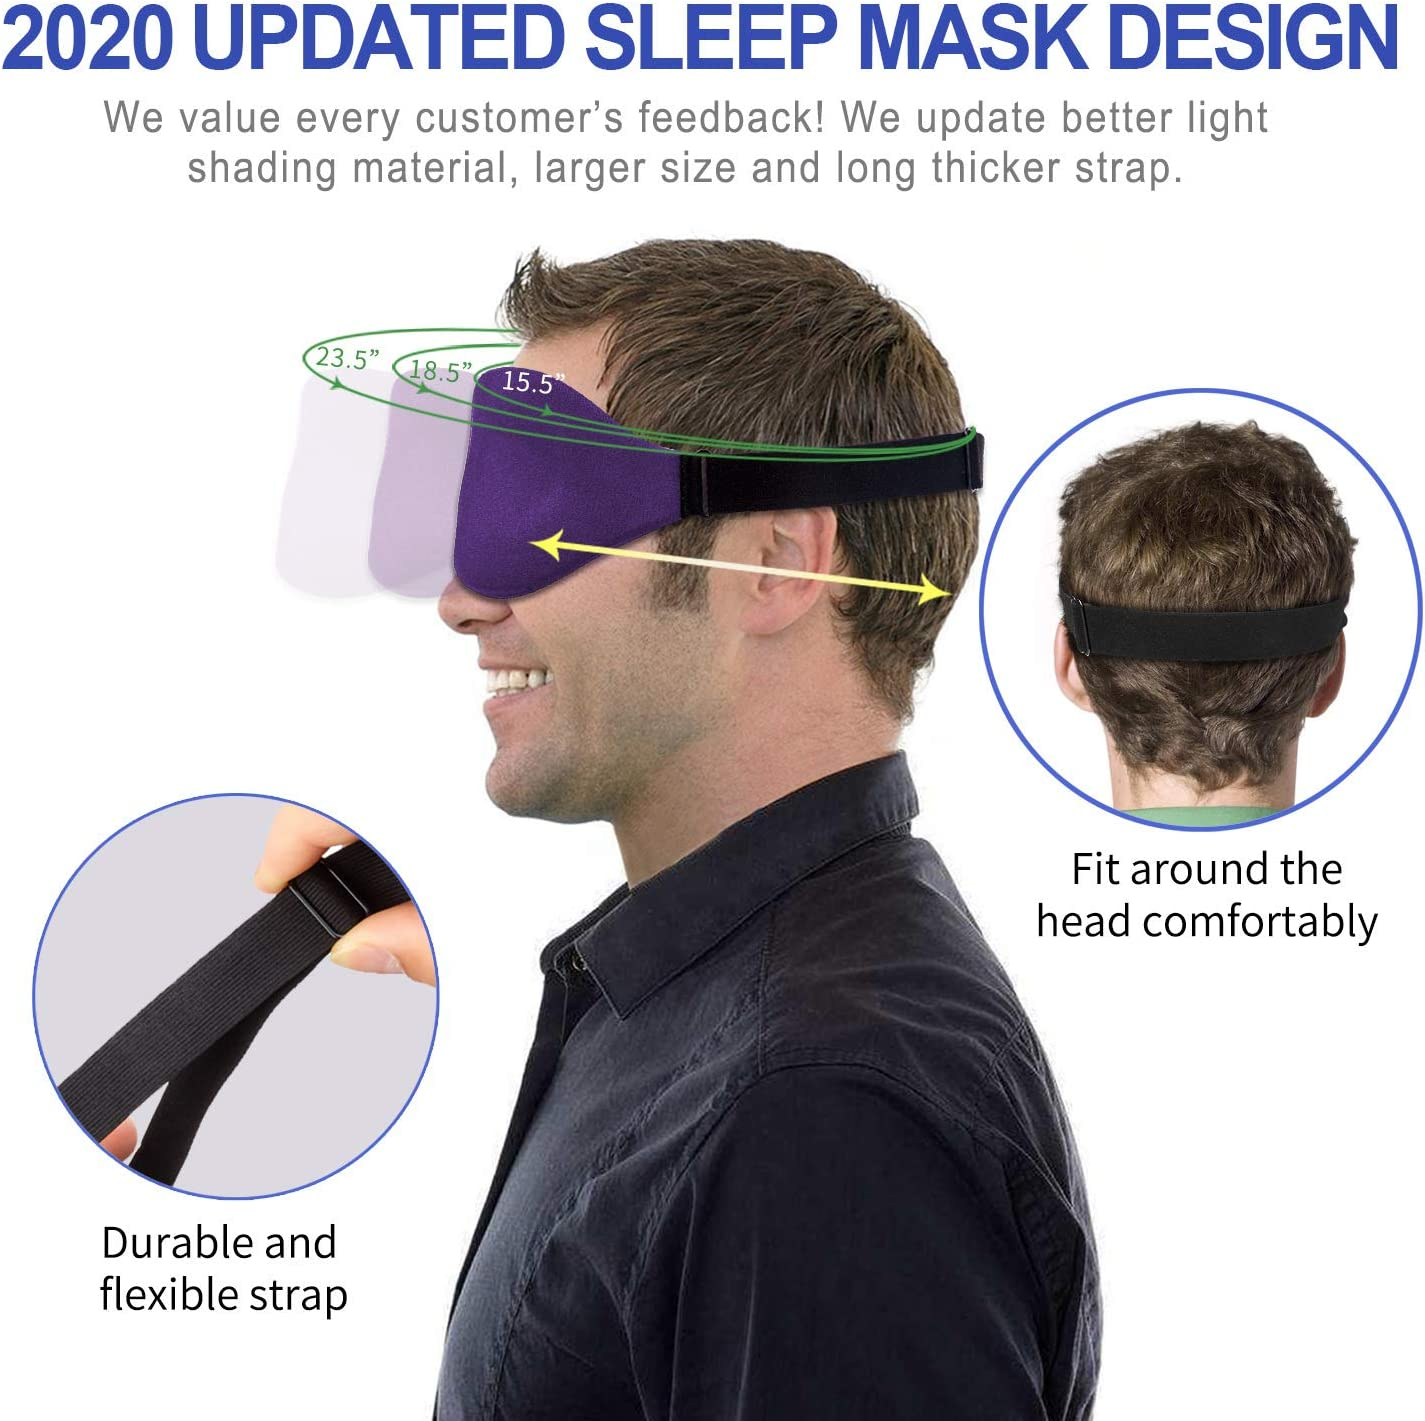 3D Sleep Mask, New Arrival Sleeping Eye Mask for Women Men, Contoured Cup Night Blindfold, Luxury Light Blocking Eye Cover, Molded Eye Shade with Adjustable Strap for Travel, Nap, Meditation, Purple: Health & Personal Care